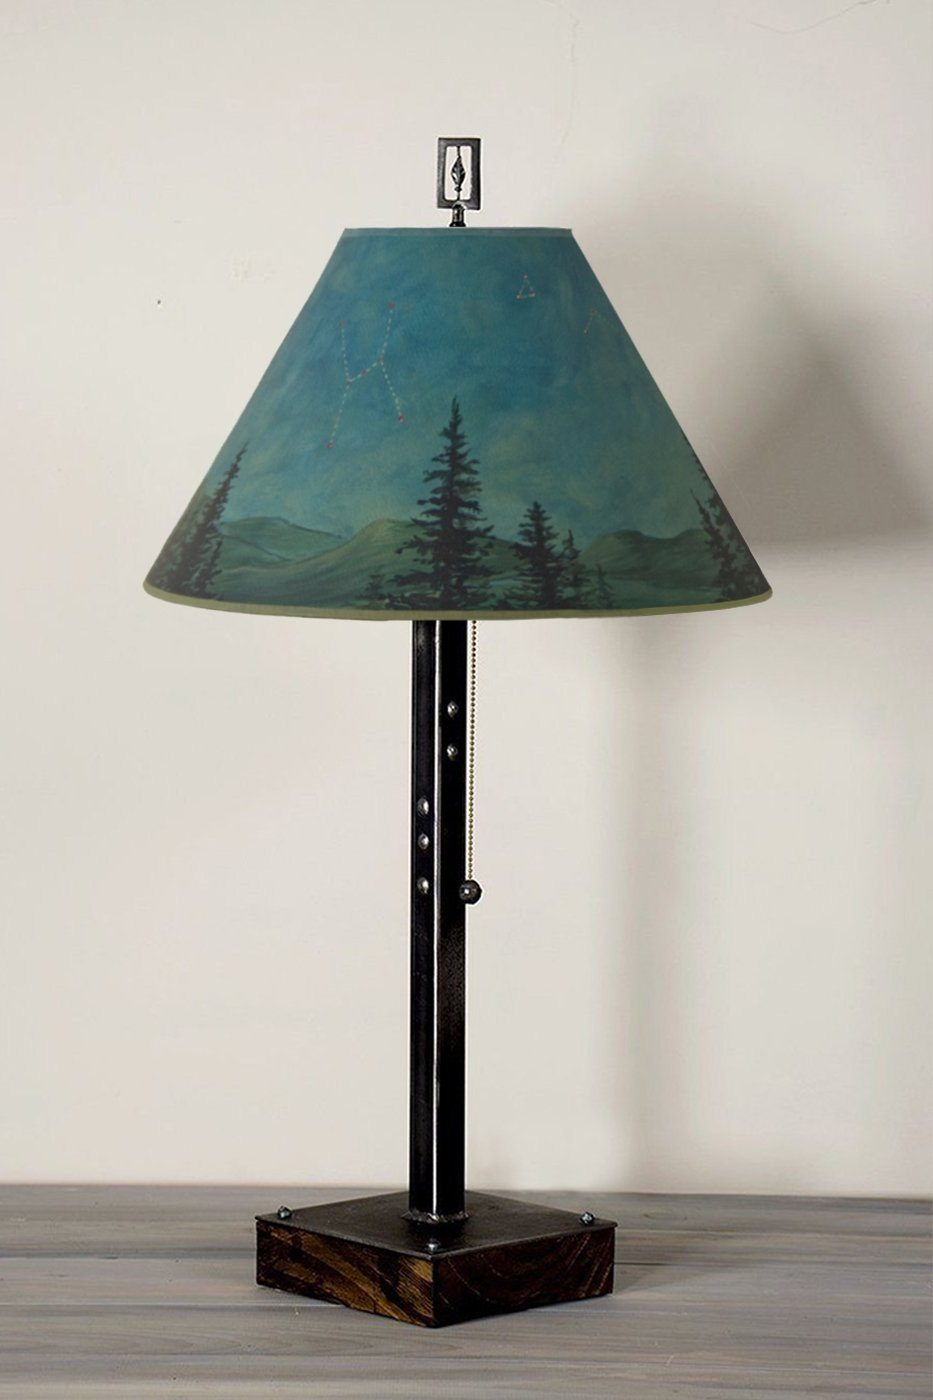 Steel Table Lamp on Wood with Medium Conical Shade in Midnight Sky